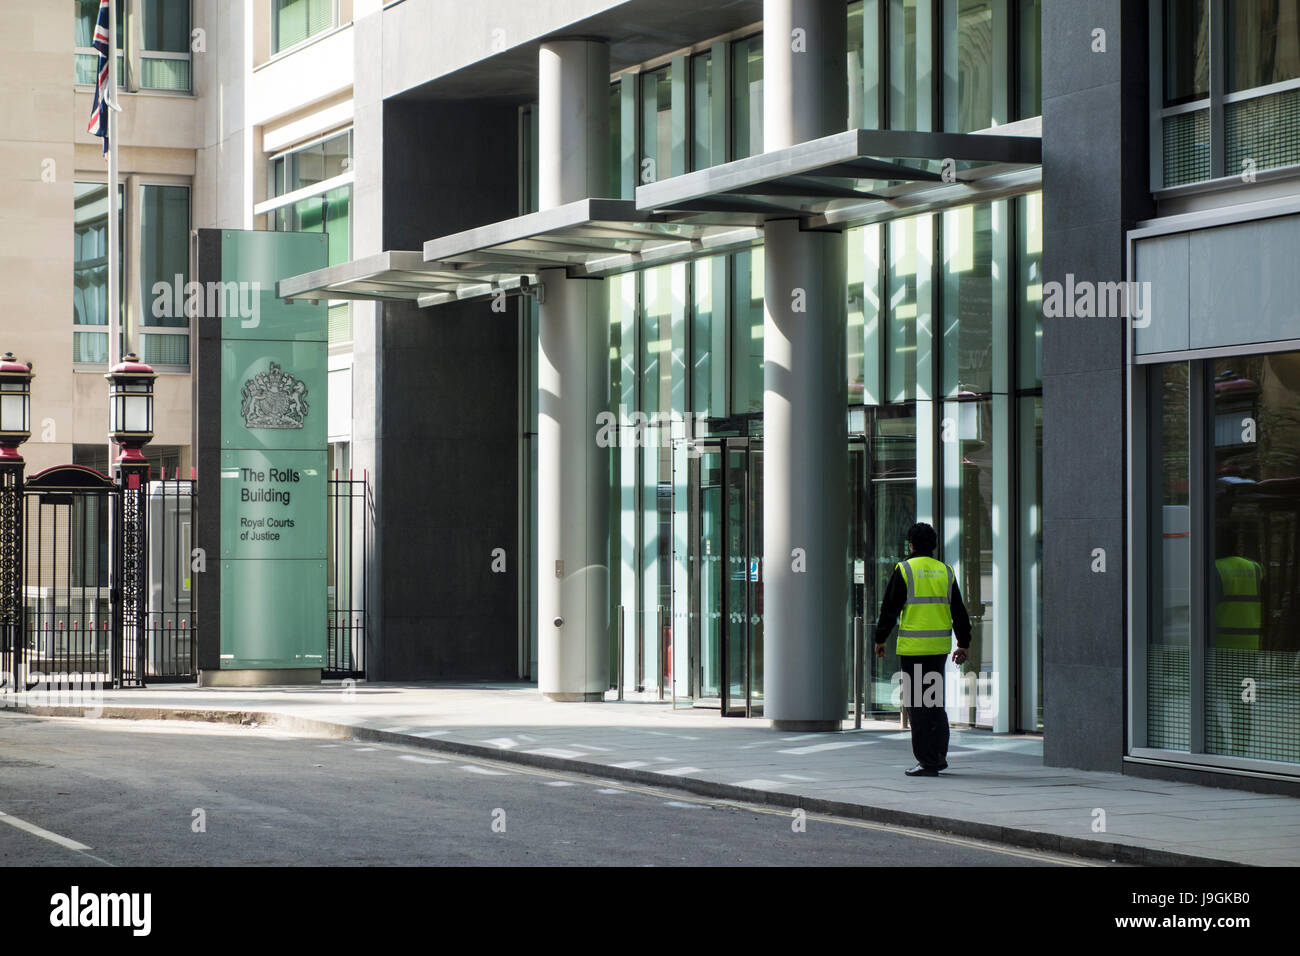 The Rolls Building, a court building designed by Woods Bagot, Royal Courts of Justice, Fetter Lane, City of London, - Stock Image